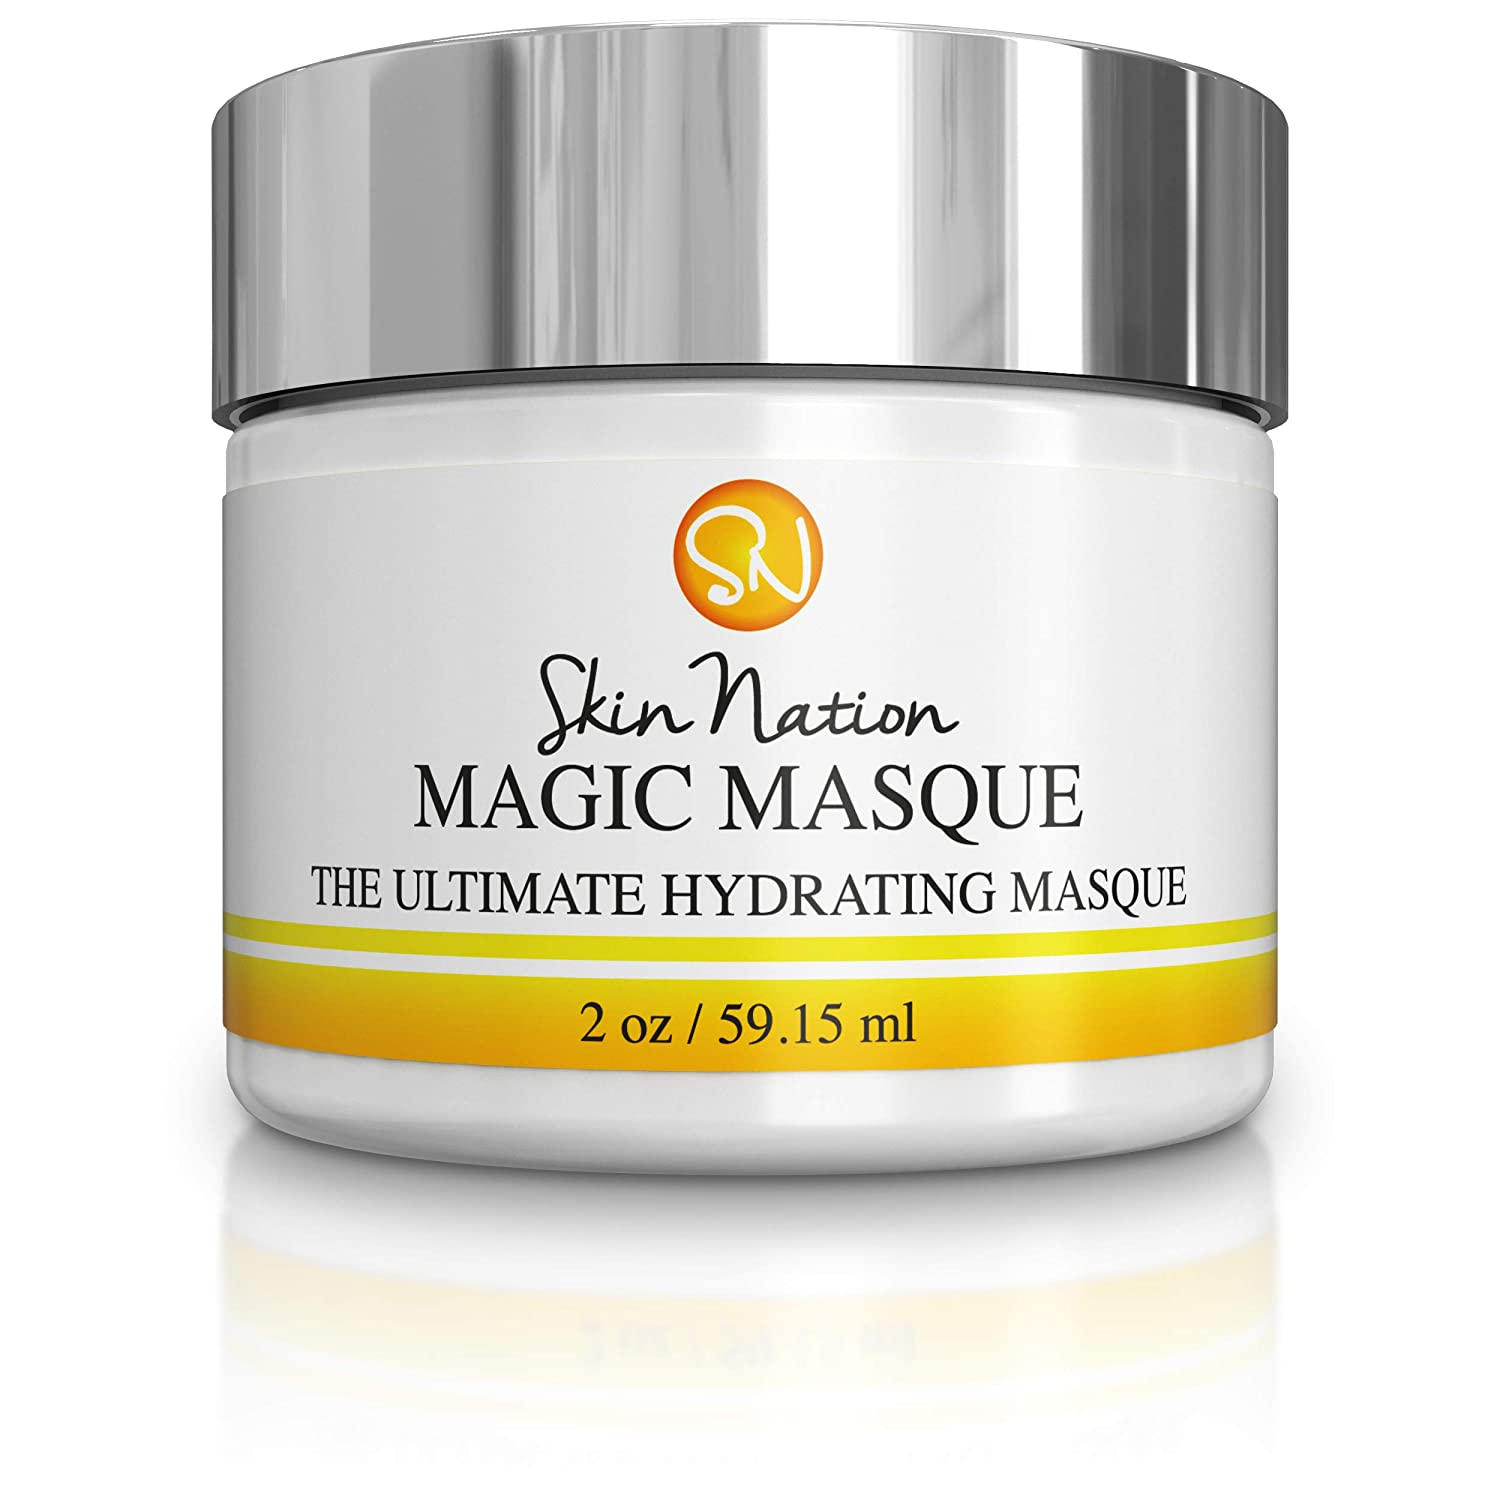 Magic Masque Face Mask | Hydrating Facial Mask, Pore Minimizer, Pore Cleansing, Skin Tightening, Anti Aging and Healing | Concentrated 2 oz. Aloe Vera Based | Skin Nation by Michelle Stafford